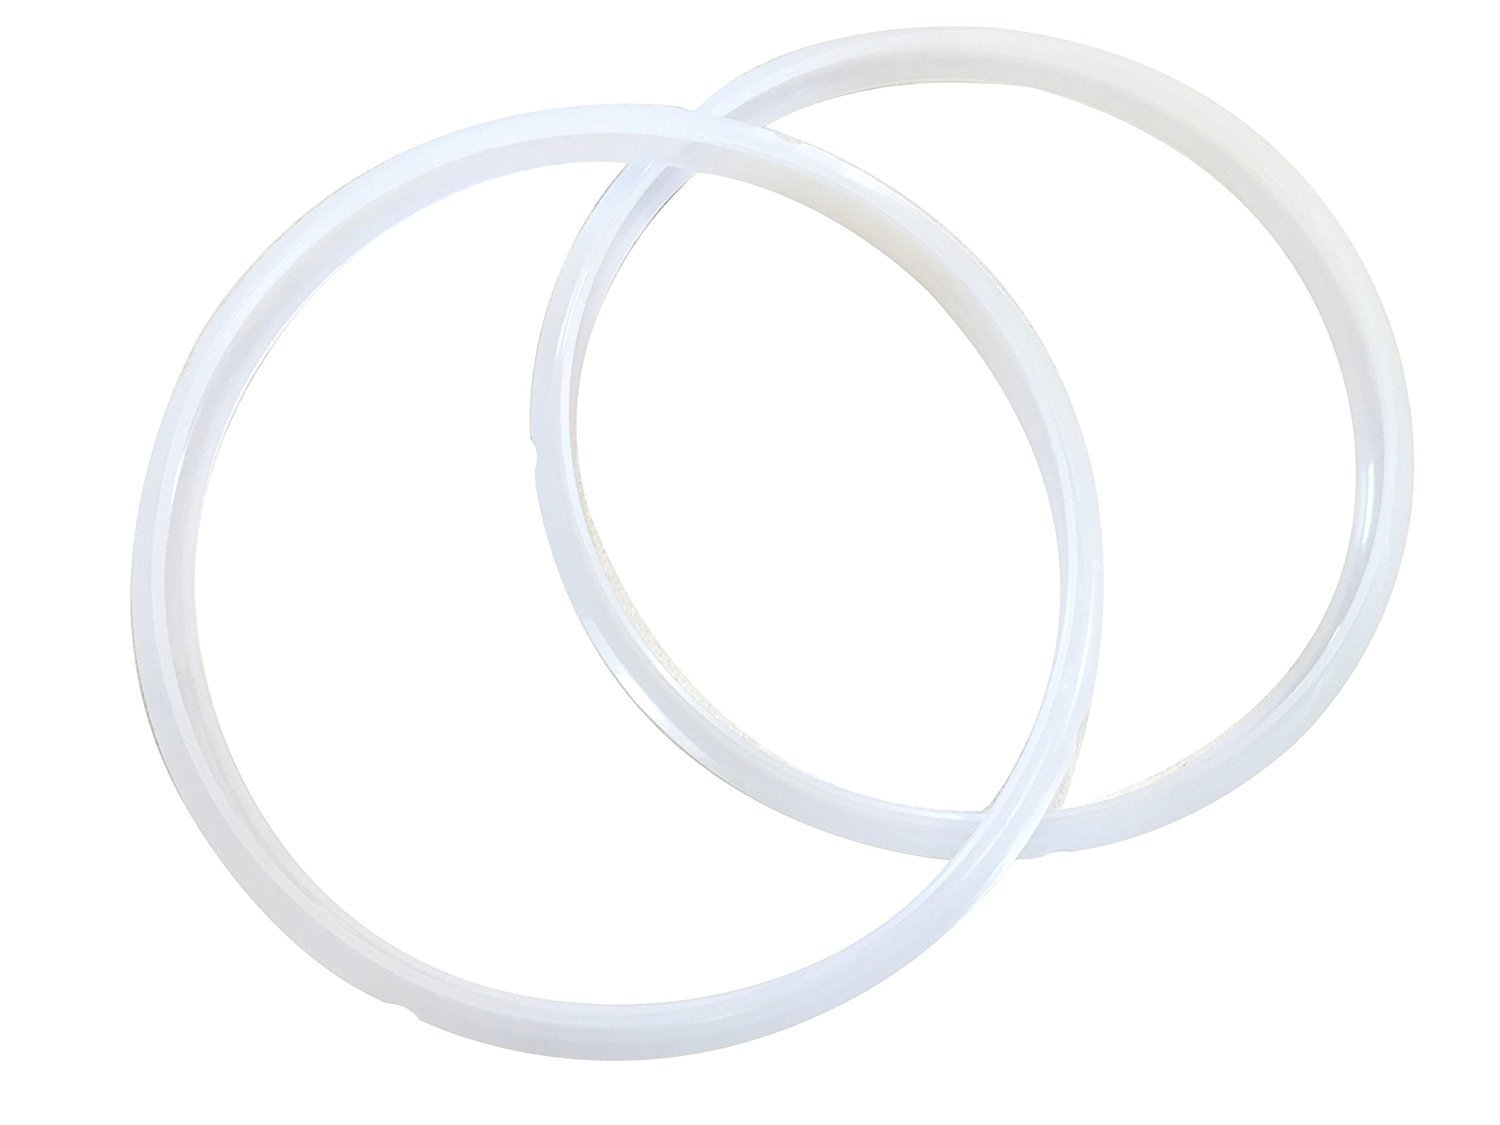 Crock Pot Express Sealing Ring Gaskets, 2 Pack, 6 Quart, Model SCCPPC600-V1, Clear